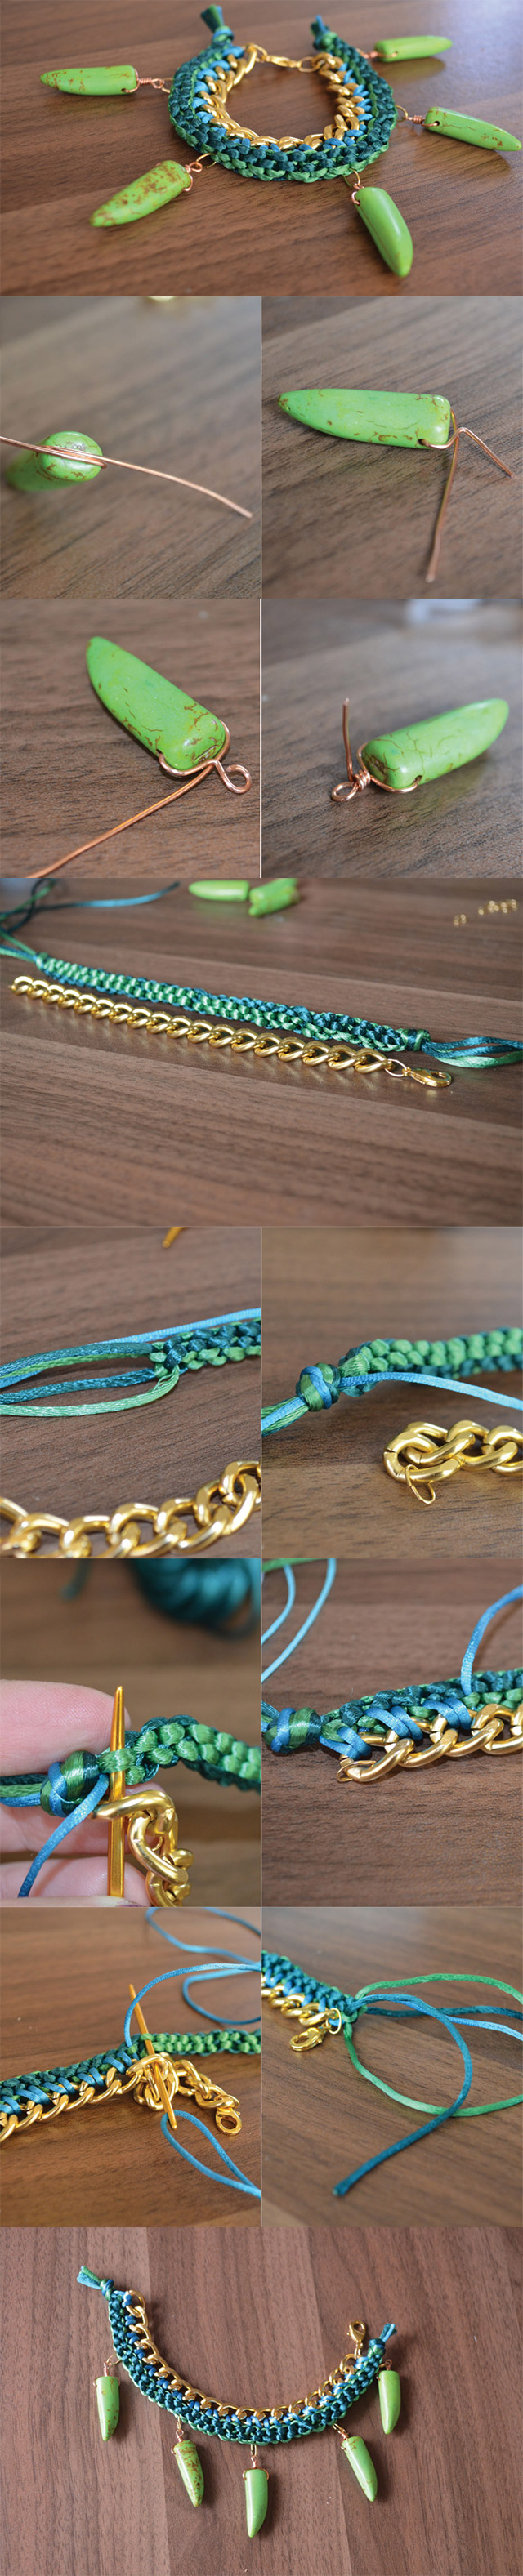 Jewelry Chains (8)